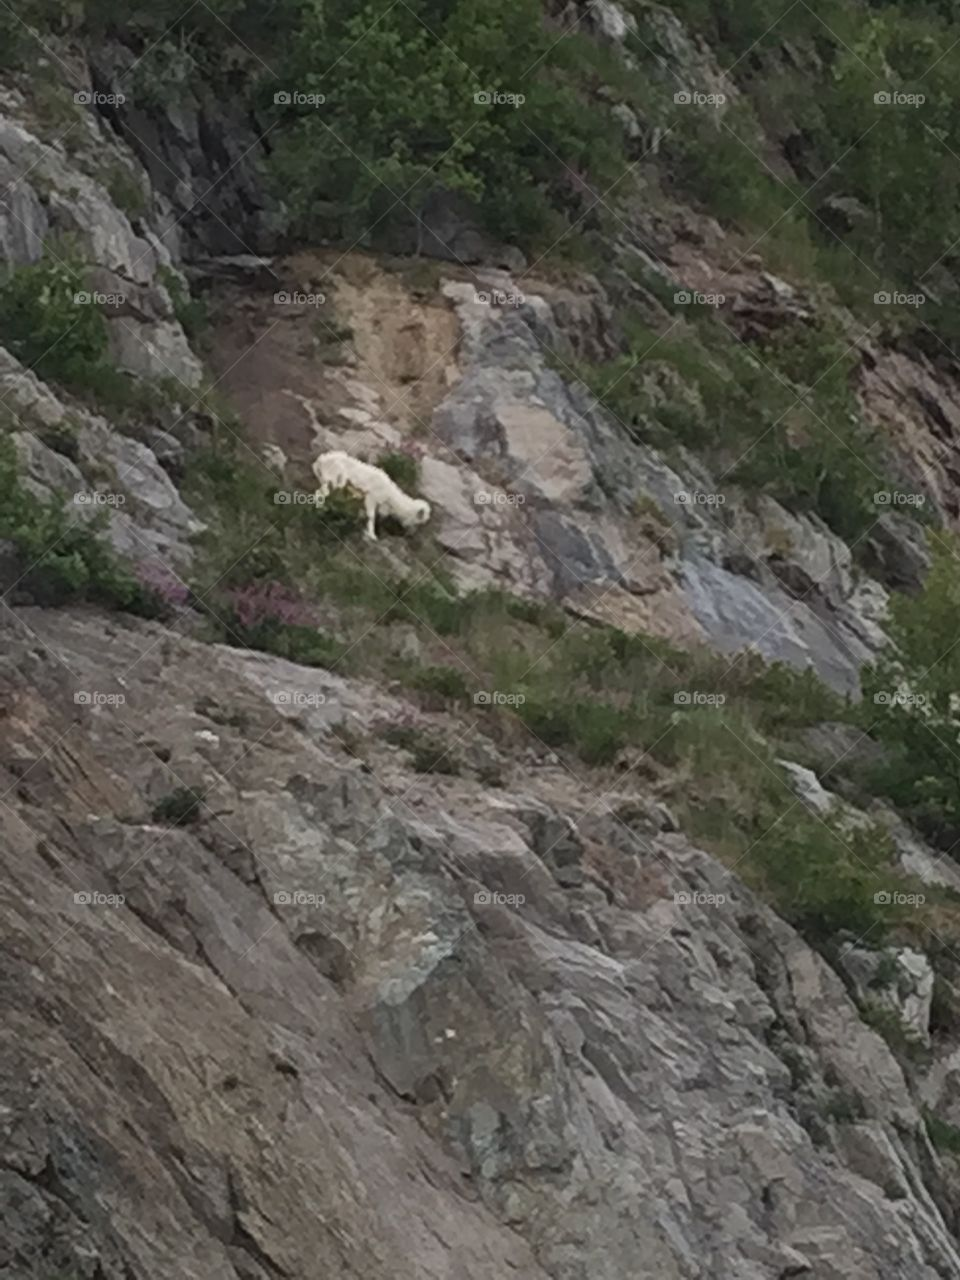 Sheep. This guy is eating on the Turnagain Arm outside Anchorage Alaska